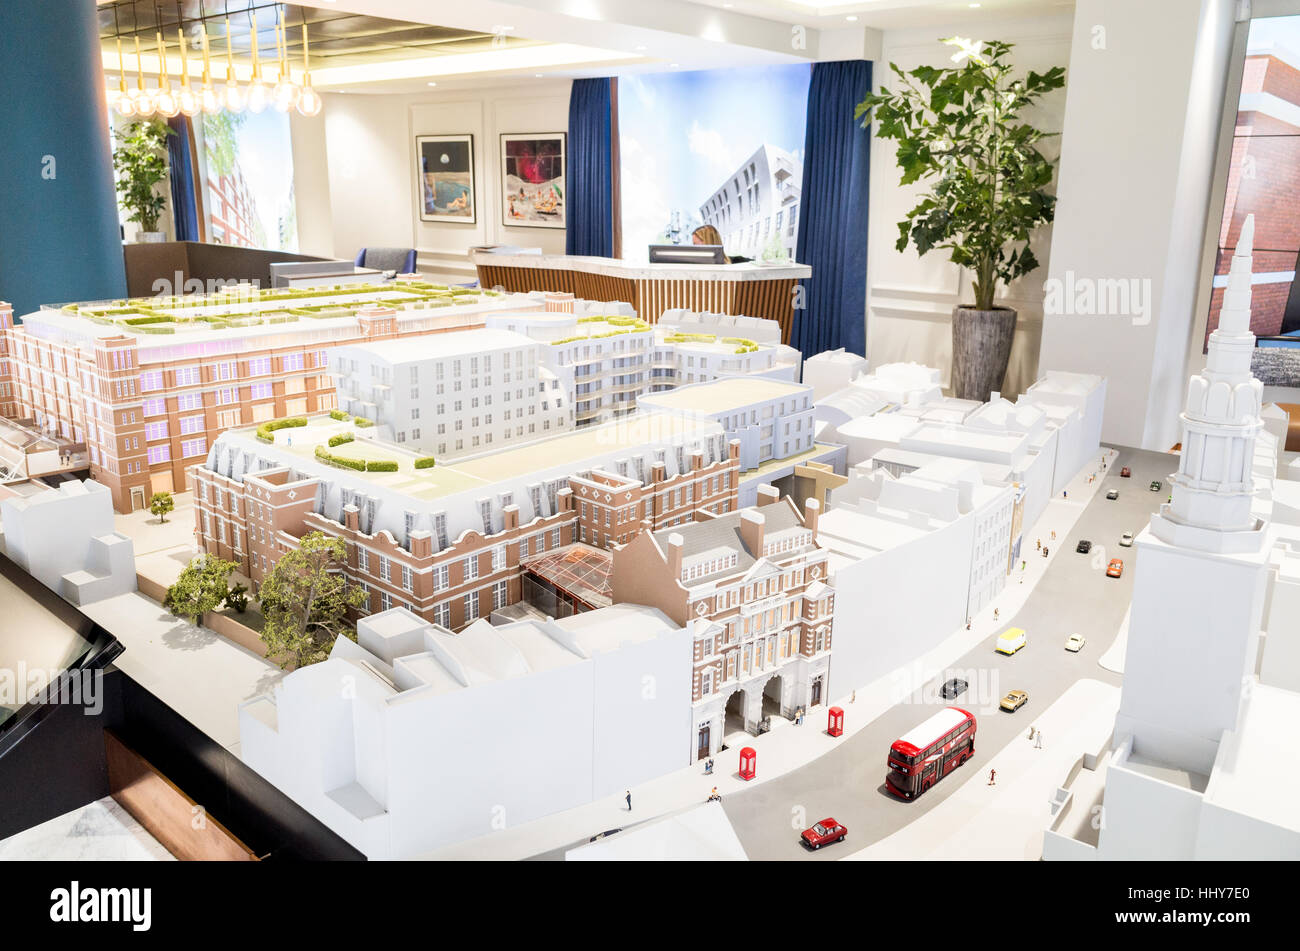 Architectural scale model of the new Islington Square property development in the marketing suite, London, England, - Stock Image